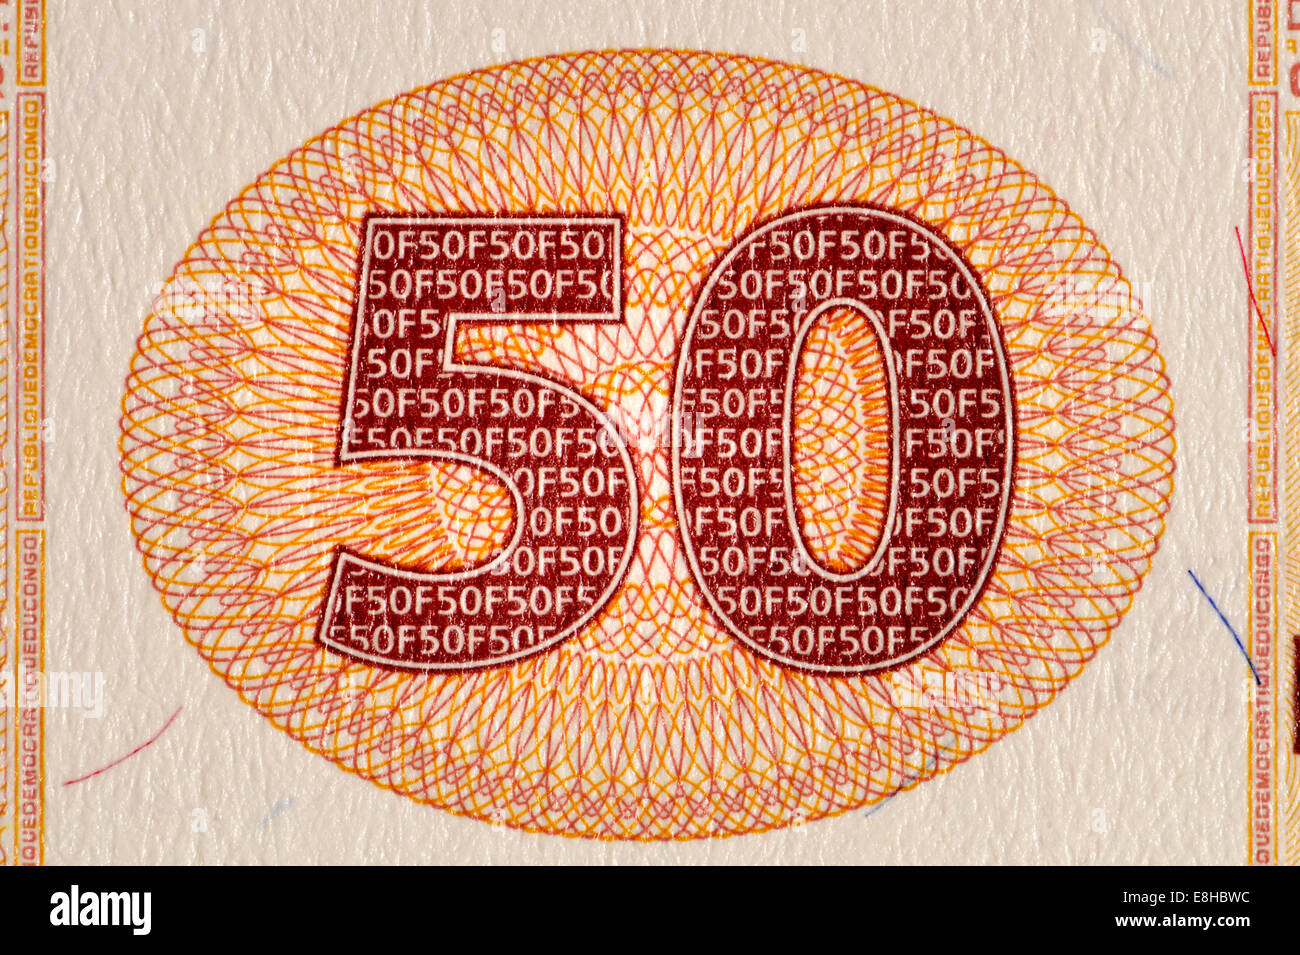 Detail from Congo 50F banknote banknote showing the numeral 50 with detailed anti-forgery printing - Stock Image